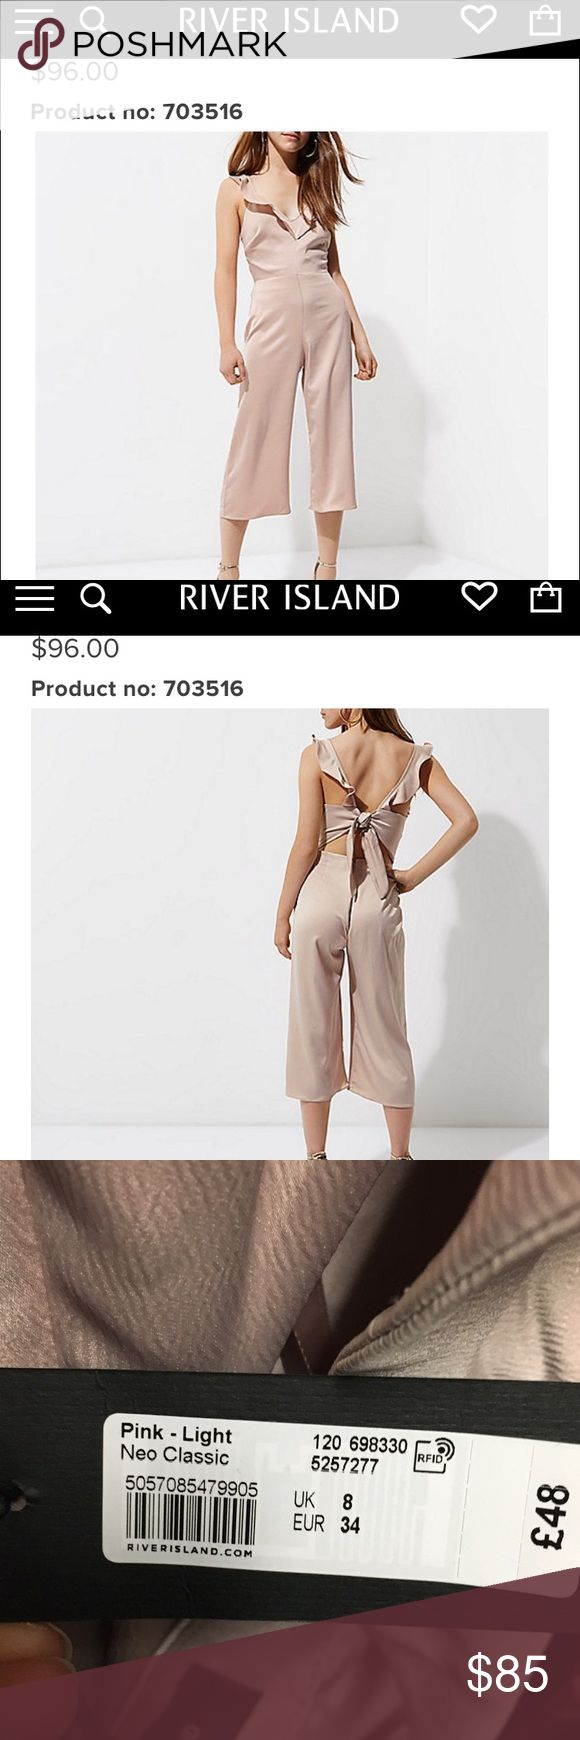 NWT River Island Pink Nude Jumpsuit! New with tags! Pinkish nude River Island Tie back Culotte Jumpsuit! SO cute! Bought it for a wedding and ended up wearing something else! US size 2 UK 8. Sold out online in this size. River Island Pants Jumpsuits & Rompers